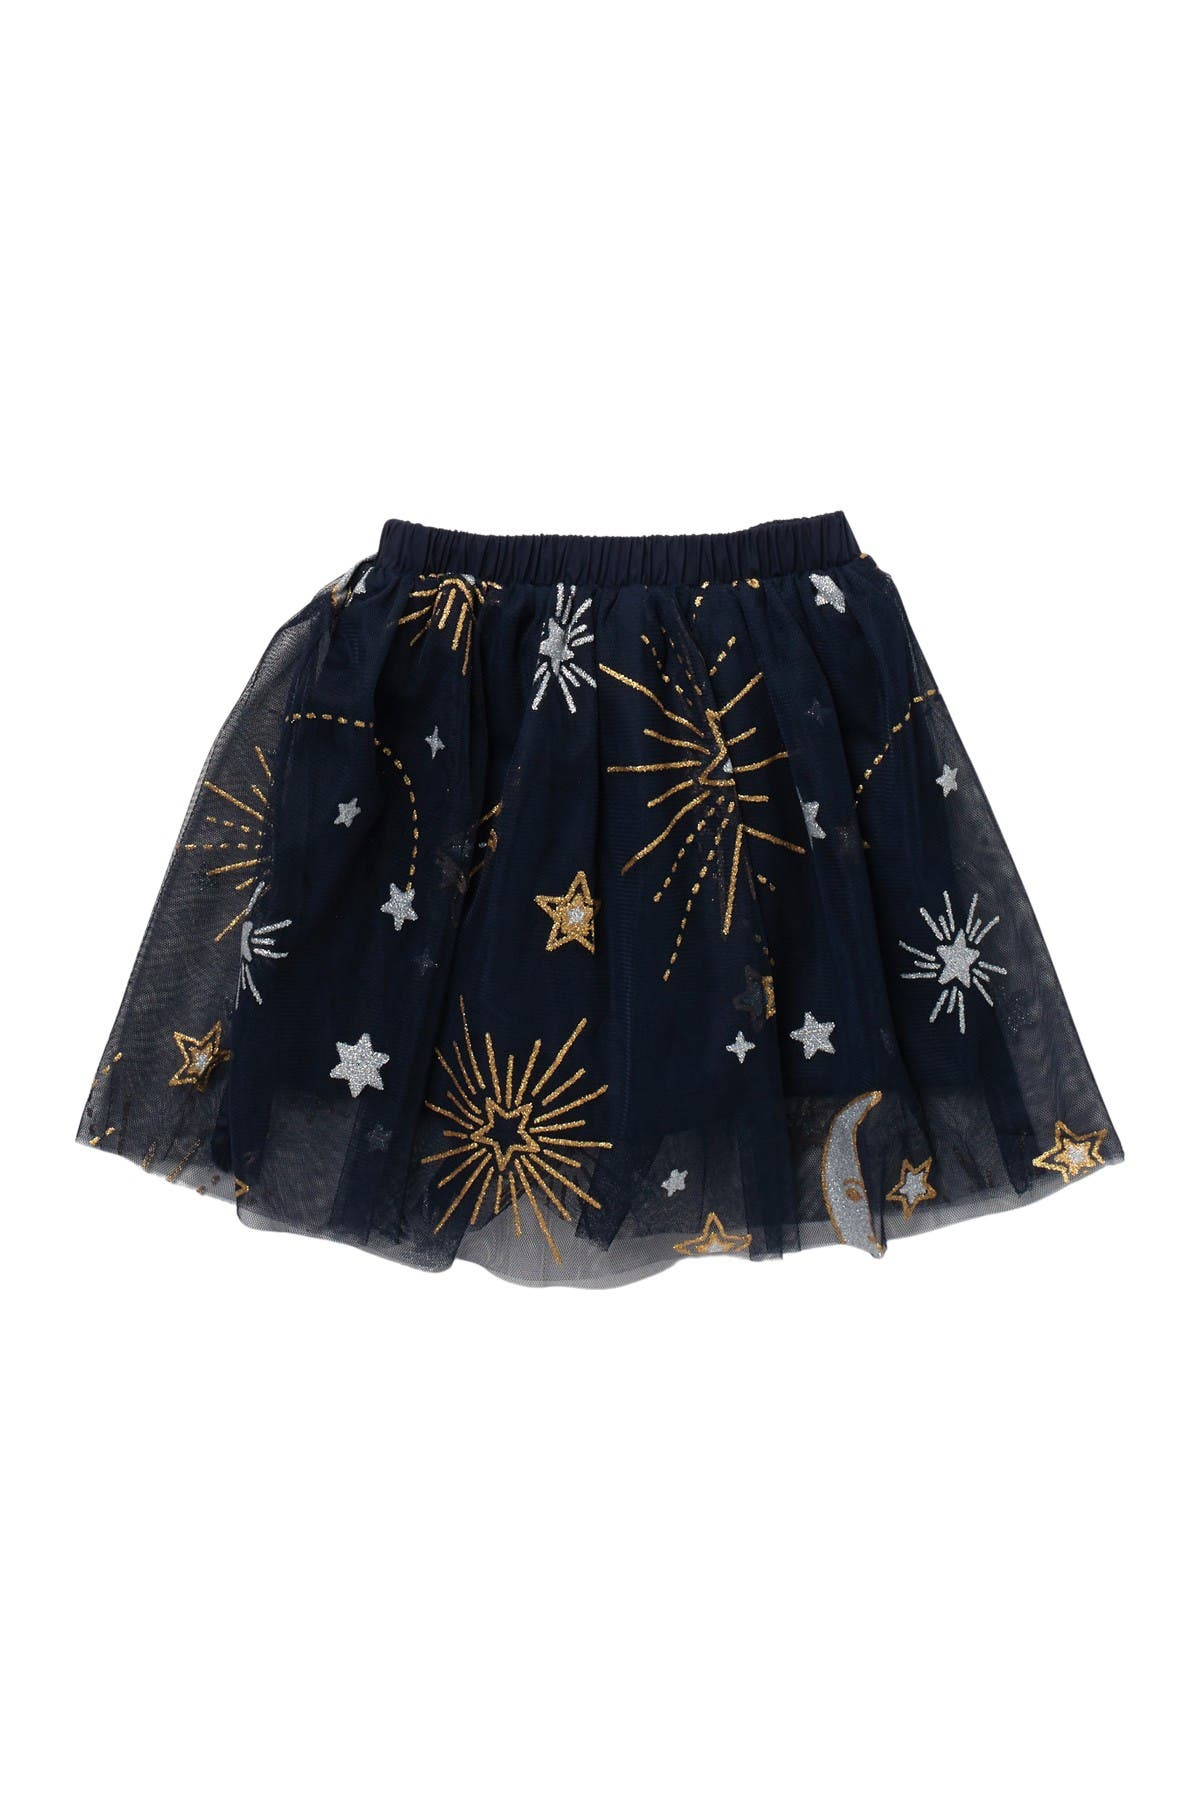 Image of J. Crew Tina Tulle Skirt